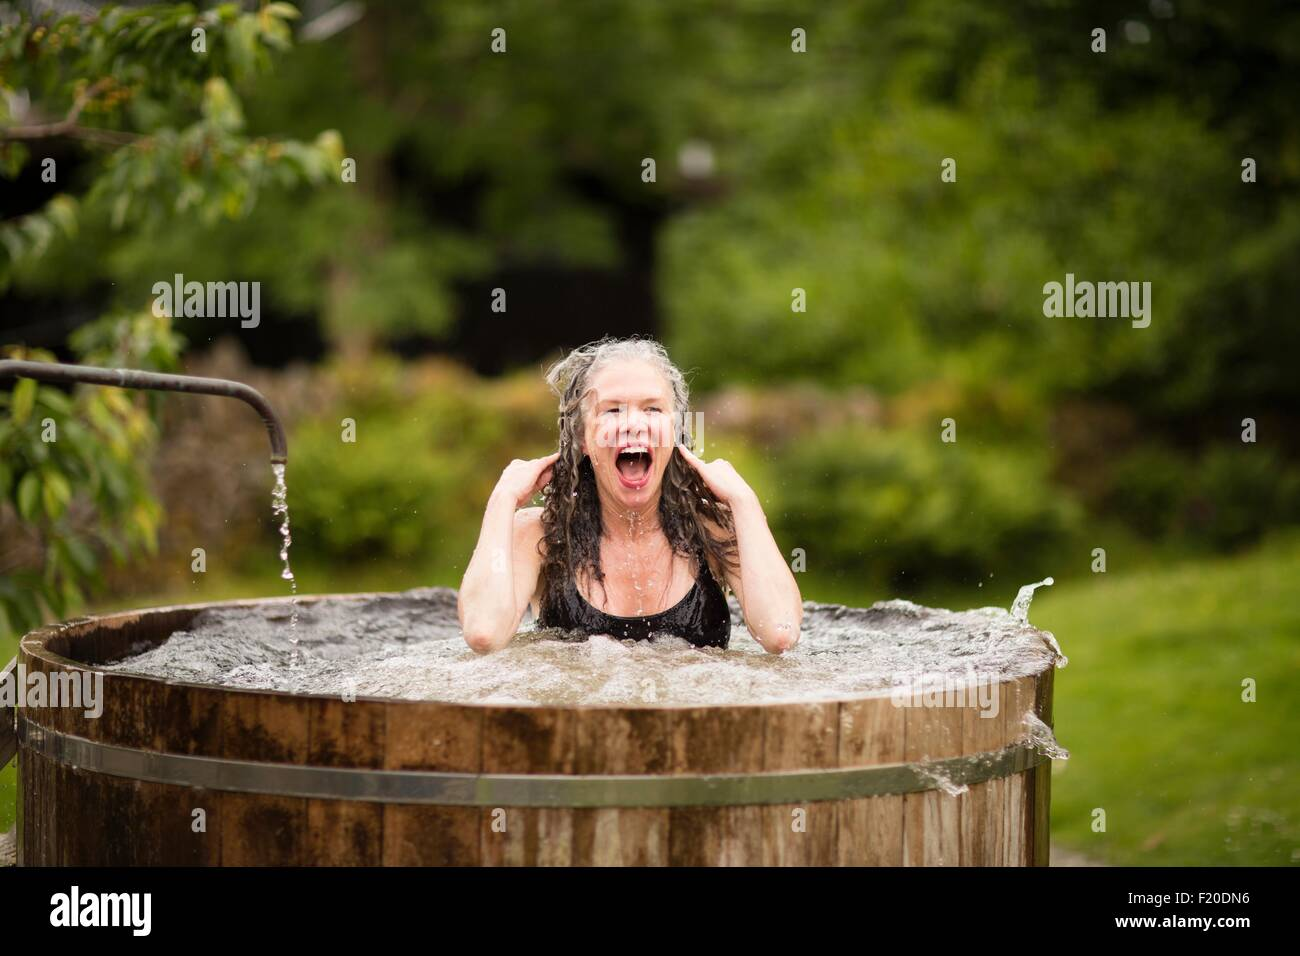 Mature woman in fresh cold water tub at eco retreat - Stock Image